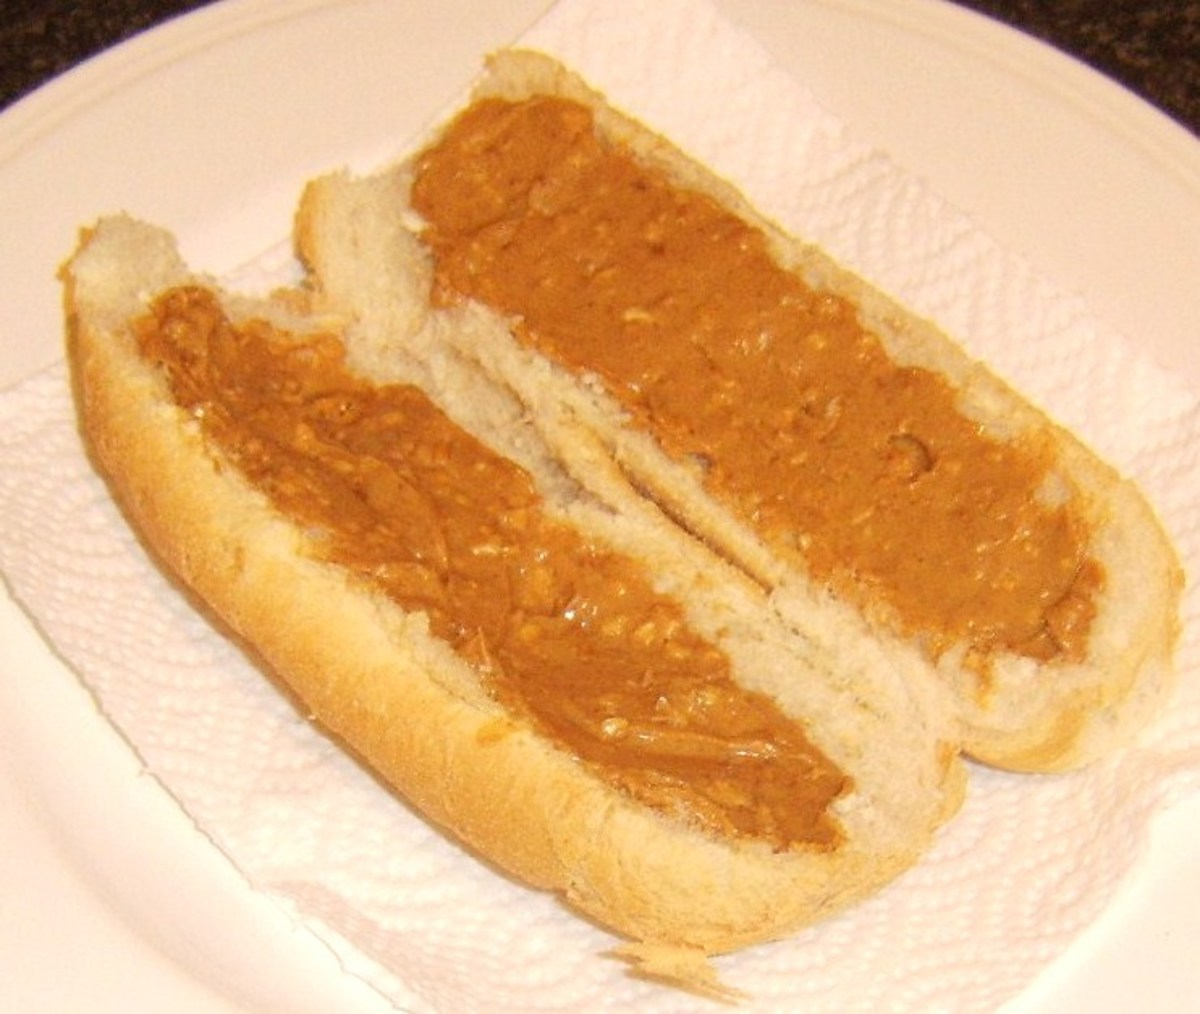 Peanut butter is spread on both sides of cut sub roll